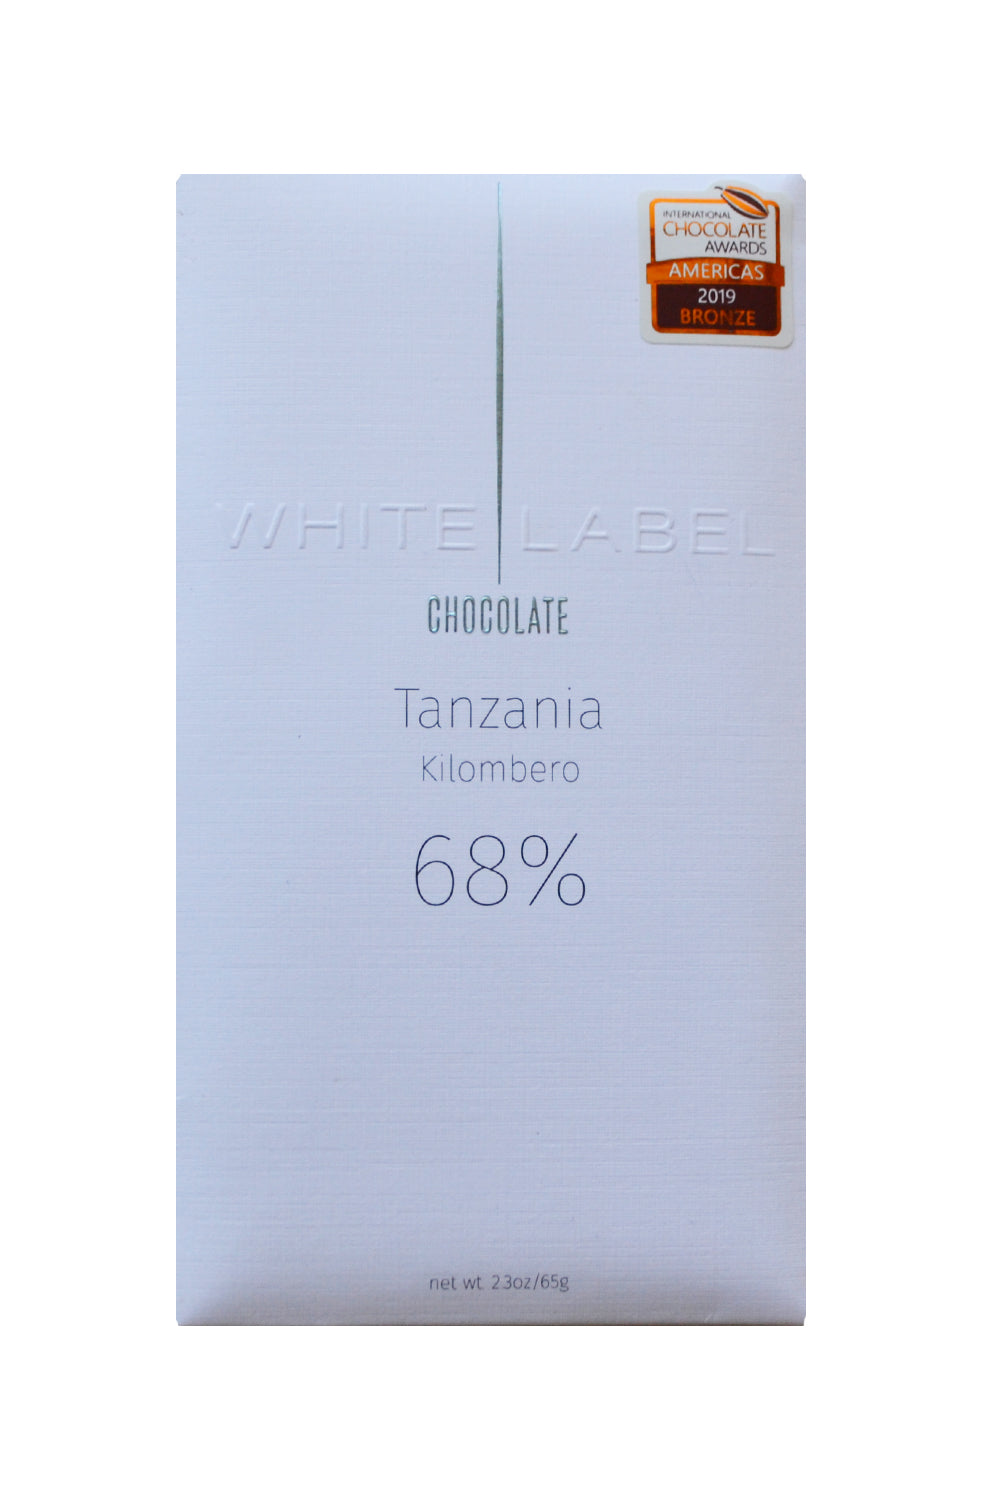 White Label Dark Chocolate Tanzania